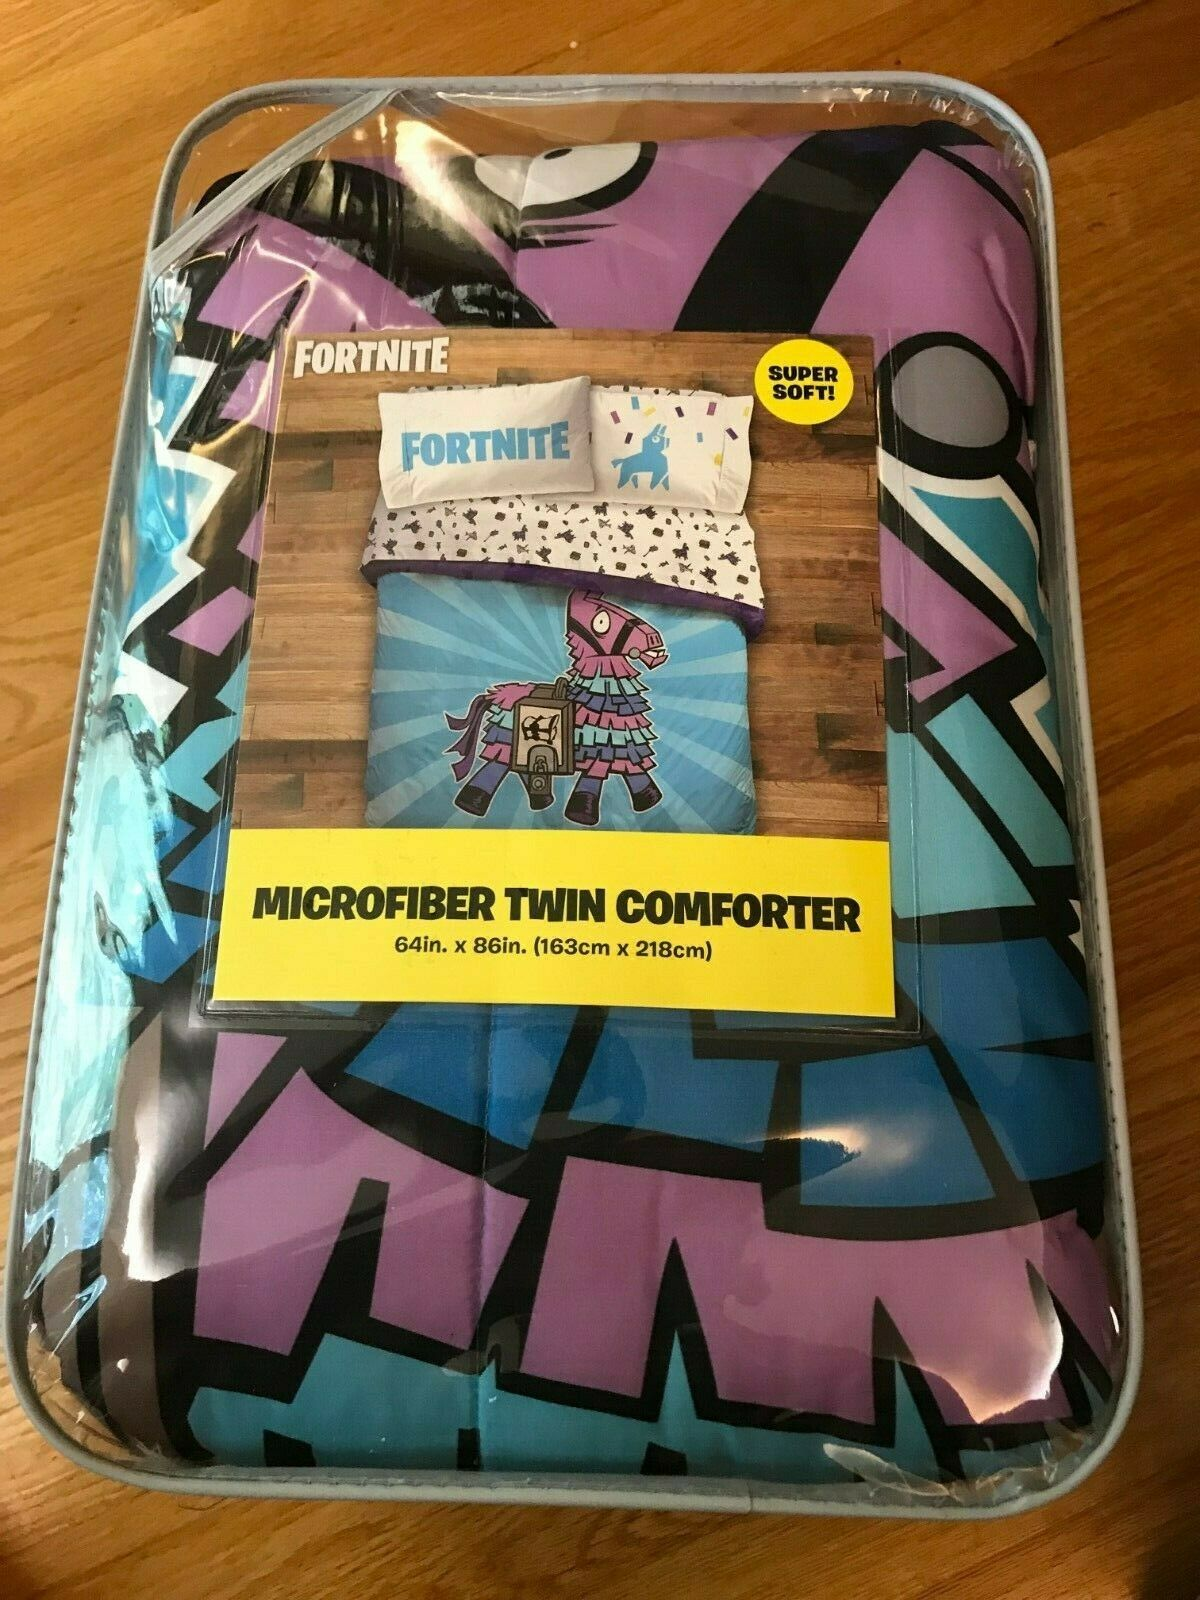 Fortnite Microfiber Twin Comforter, brand new, Llama